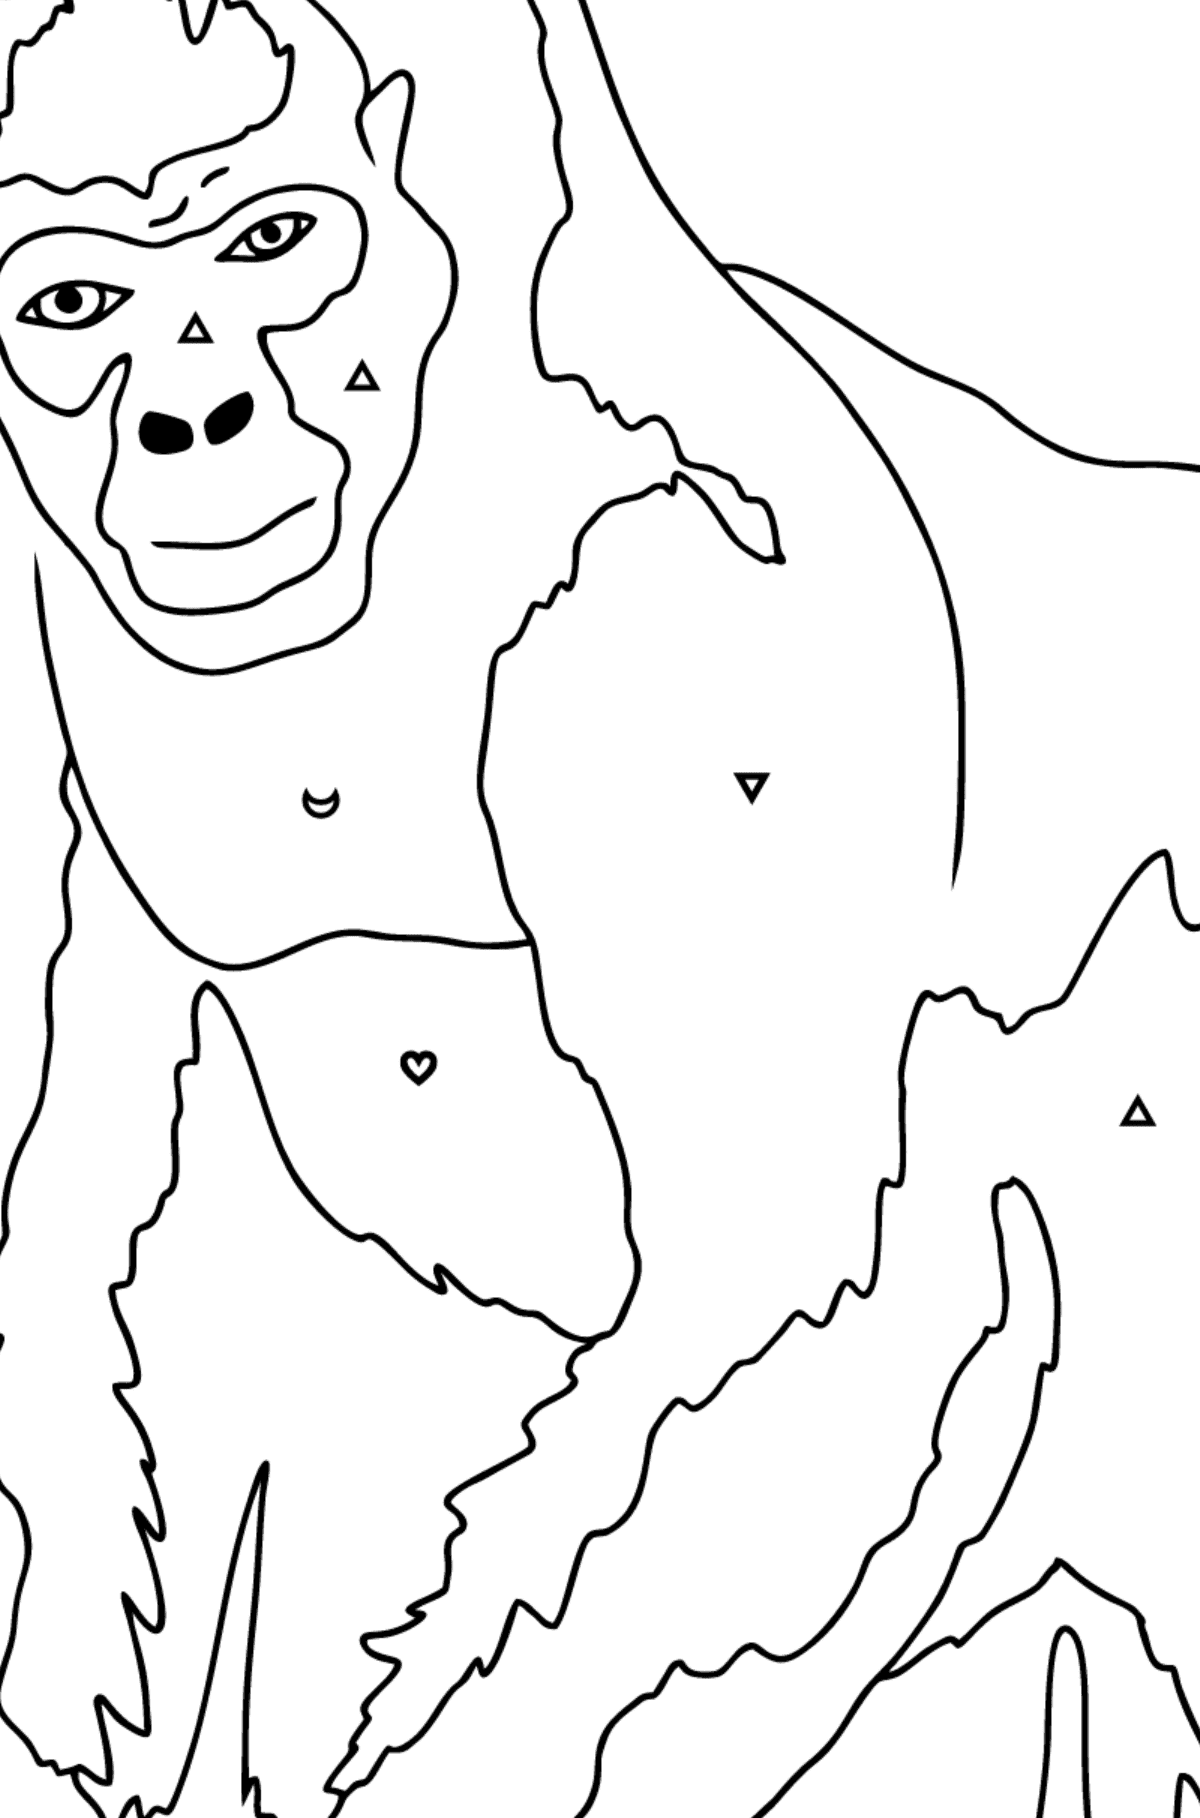 Coloring Page - A Real Gorilla - Coloring by Symbols and Geometric Shapes for Children